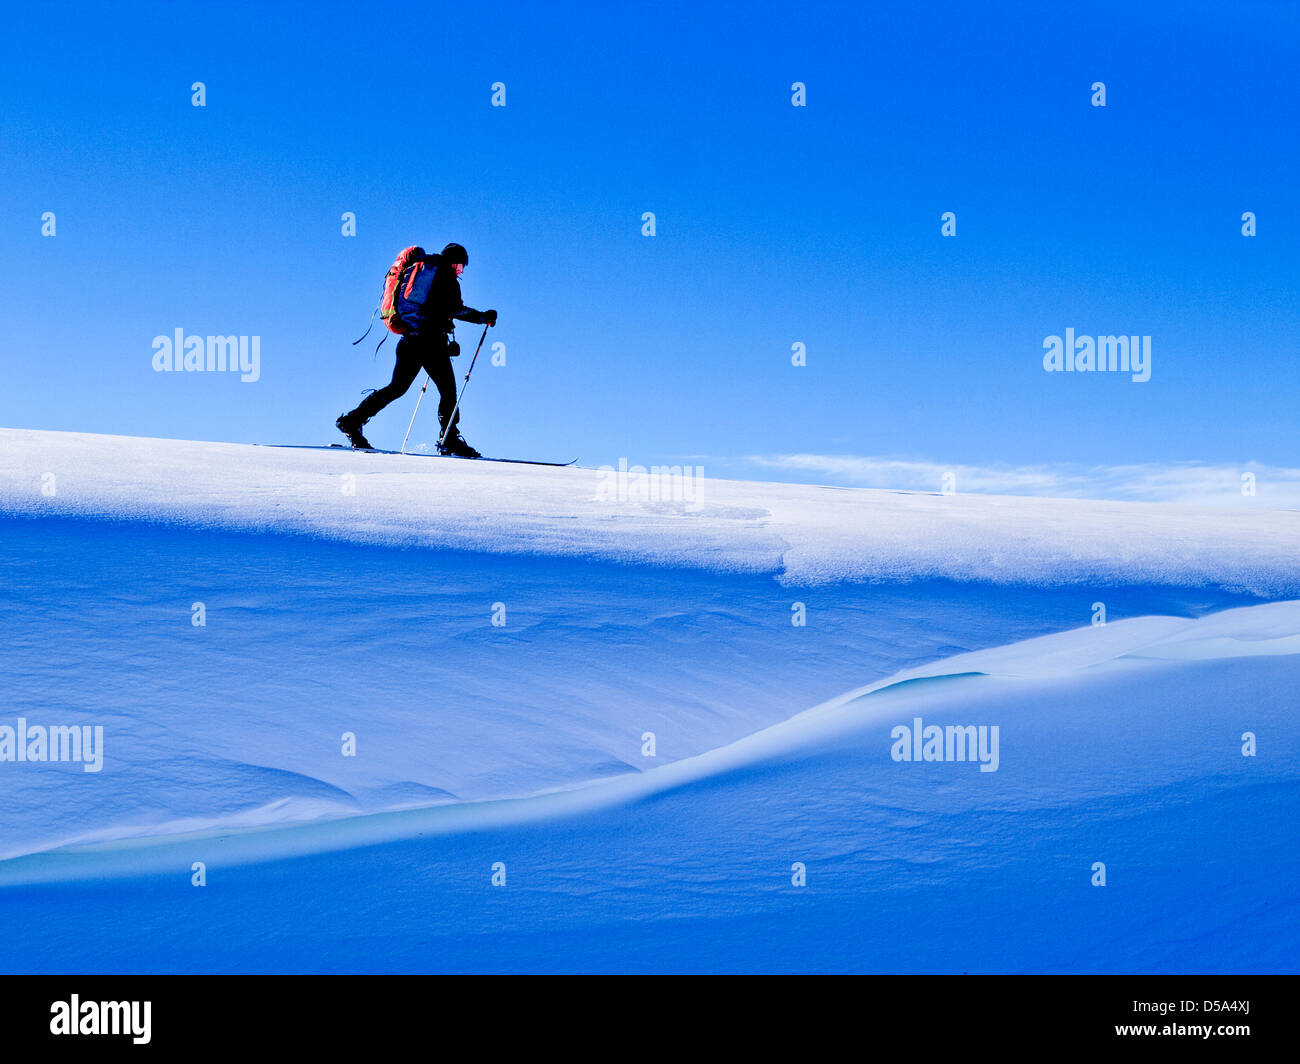 Skier on top of a cornice, Ski touring in Northern Norway - Stock Image